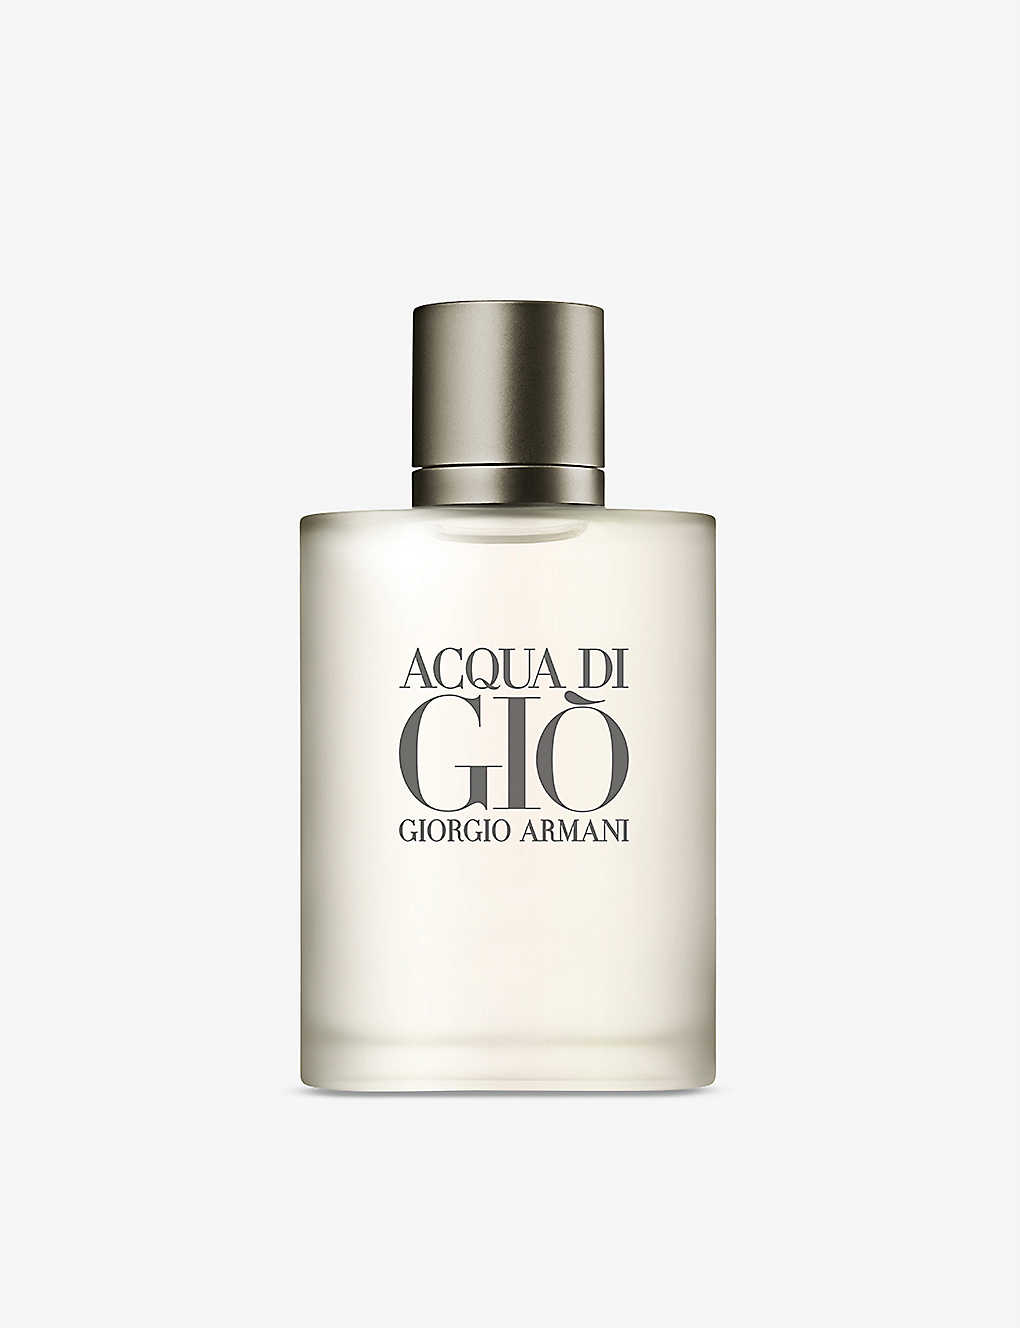 acqua di gio olor disbursement into india